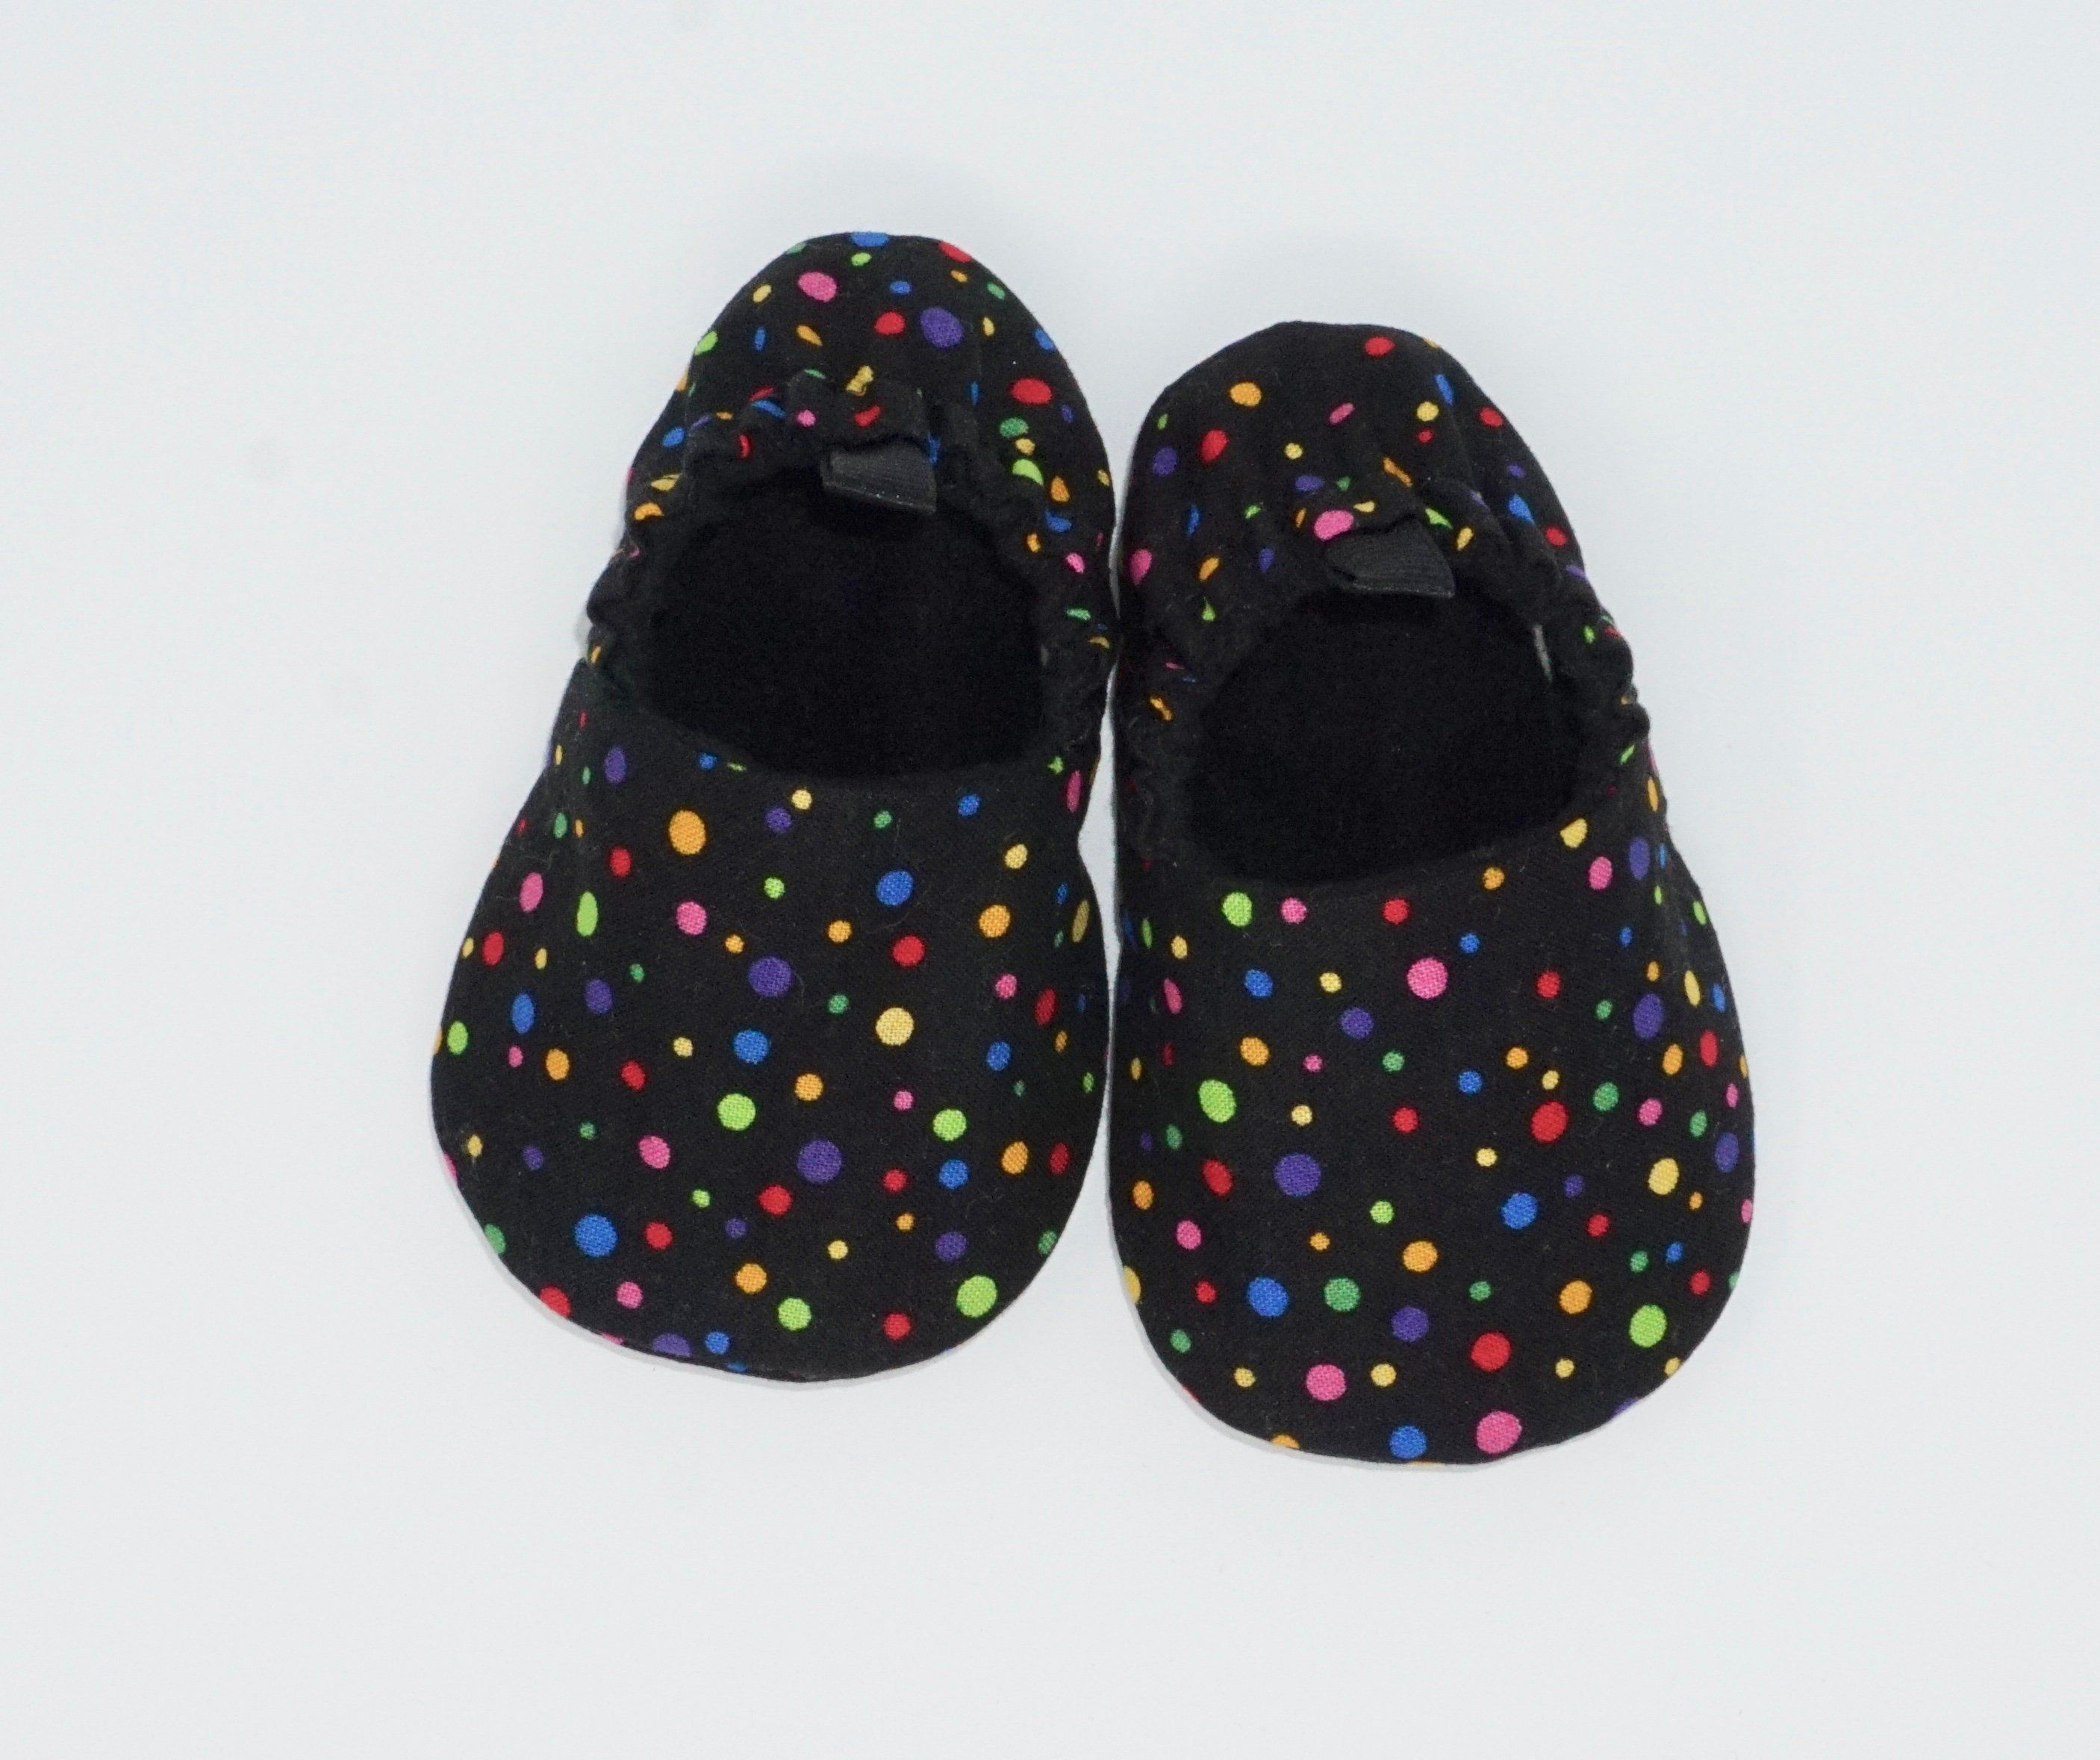 ef8c8de77a735 Confetti Baby Shoes, Black, Soft Sole Baby Shoes, Baby Booties, Toddler  Slippers, Baby Moccs, Baby Girl, Baby Gift, Baby Shower Gift by  stitchininstilettos ...